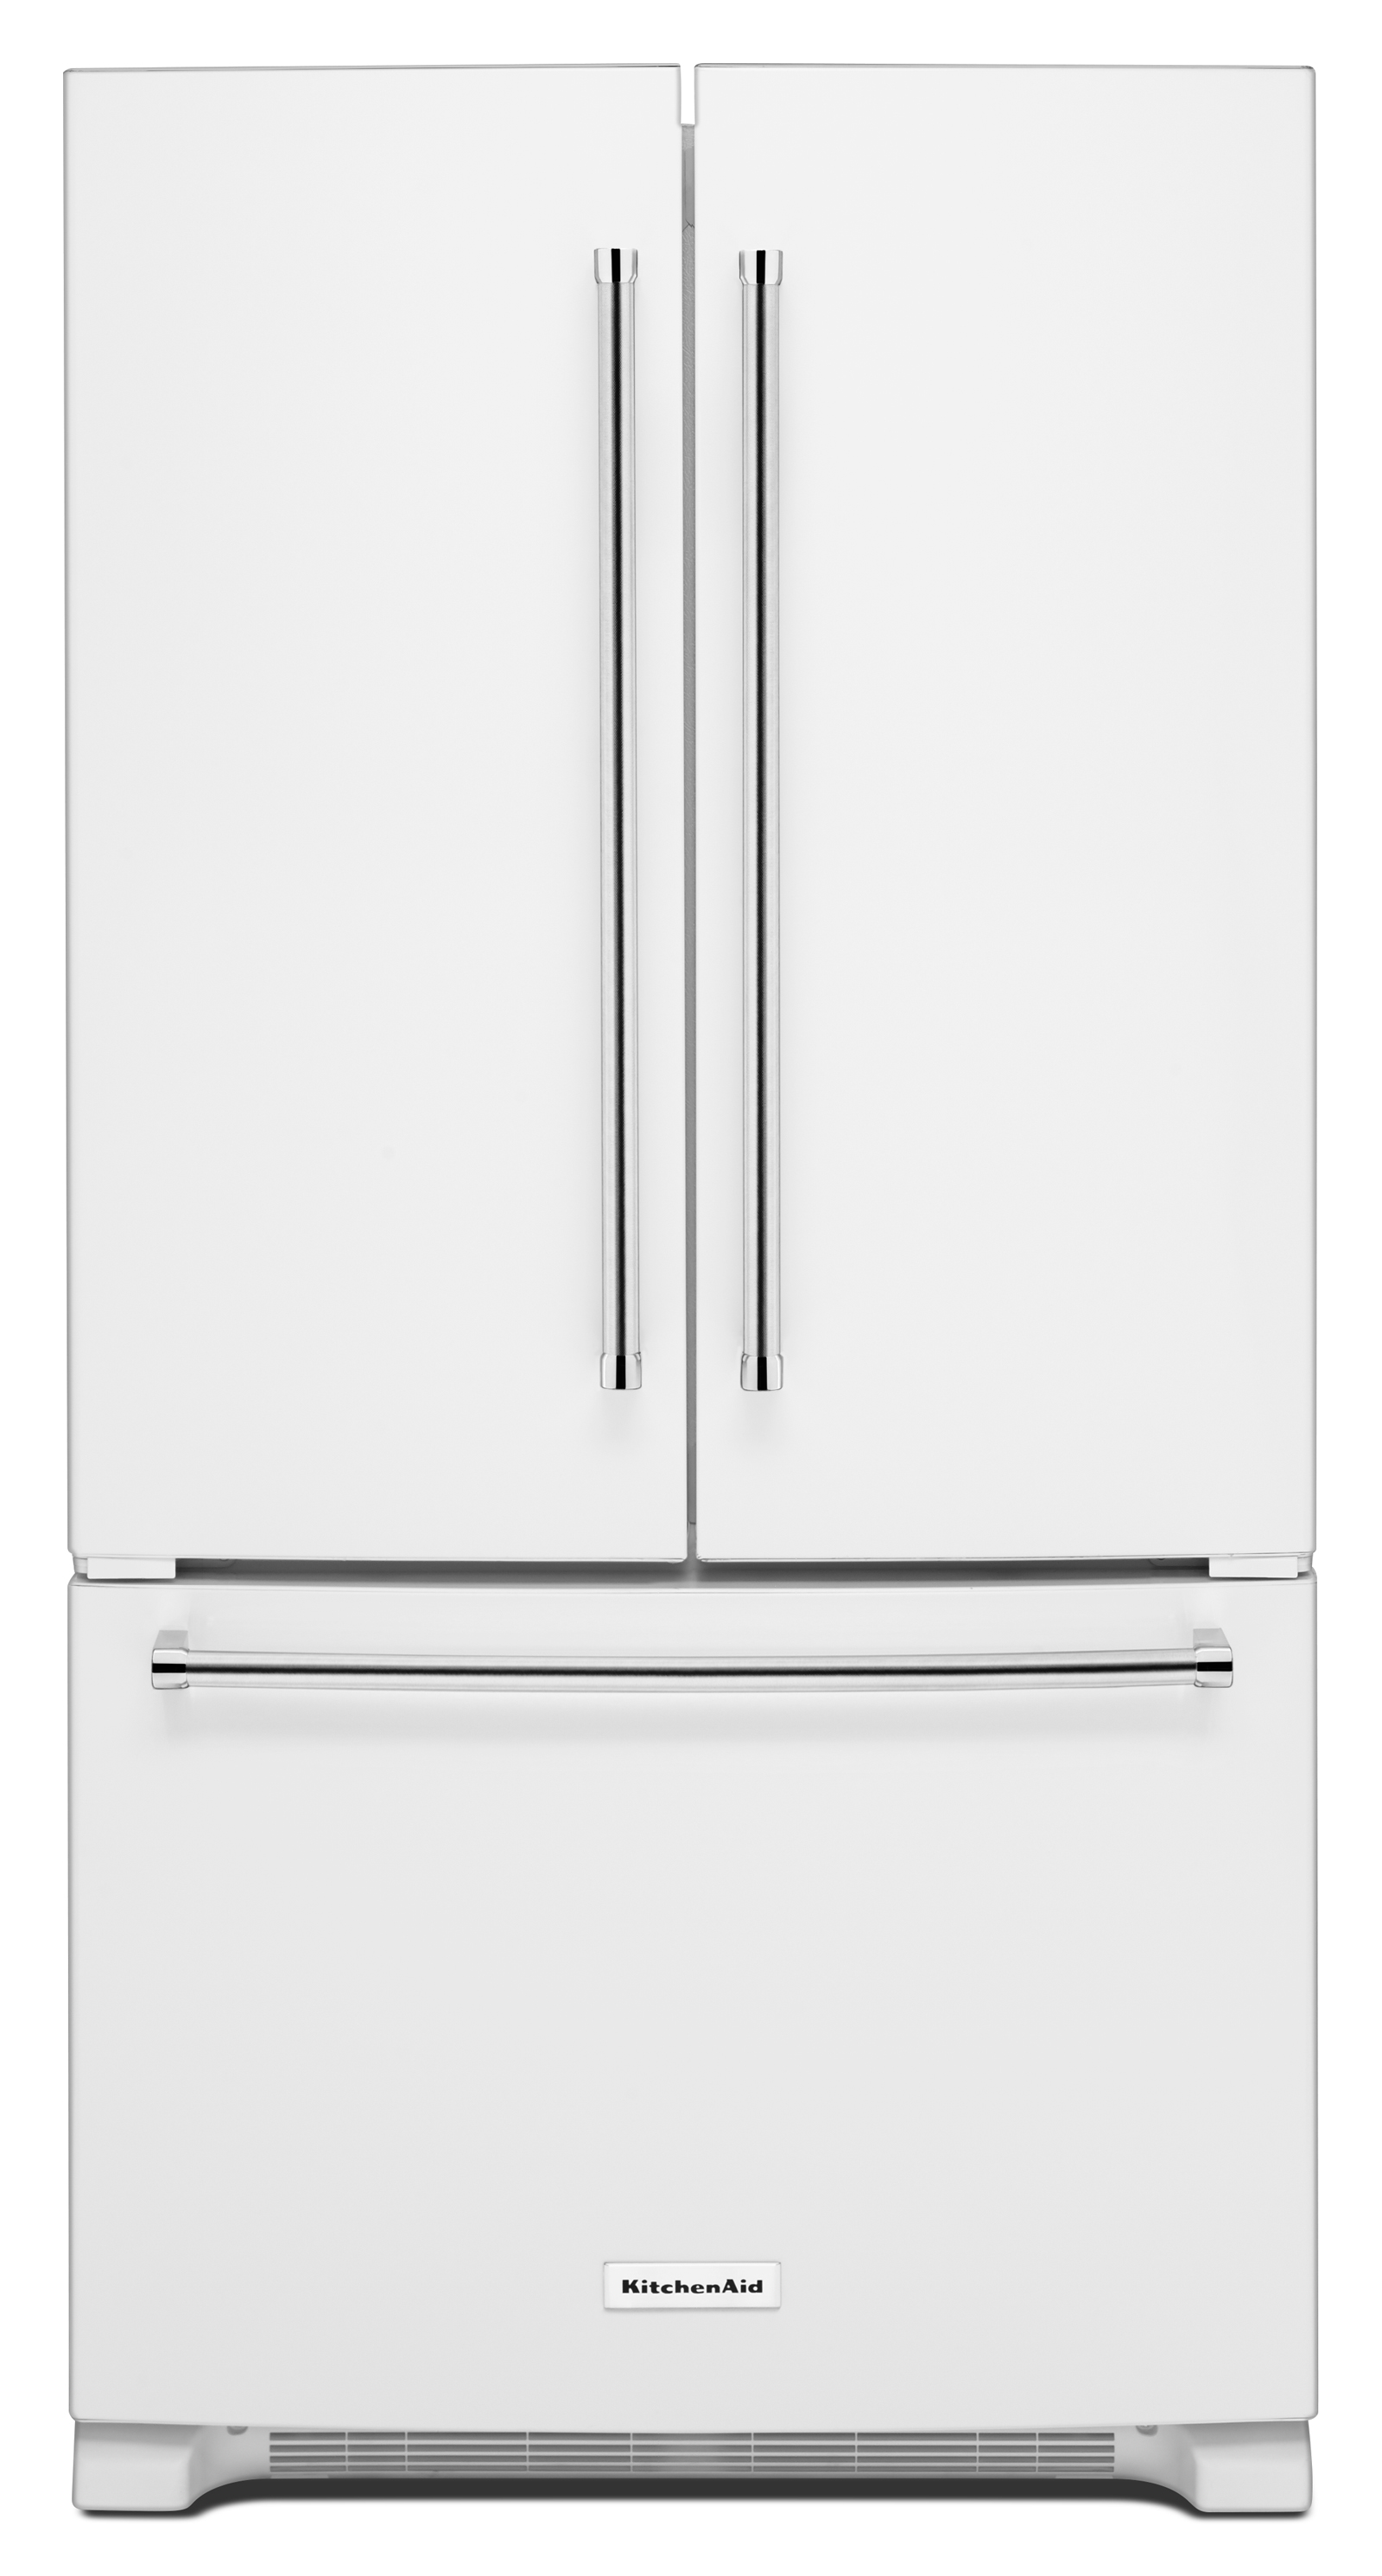 KitchenAid KRFF305EWH 25 cu. ft. French Door Refrigerator - White